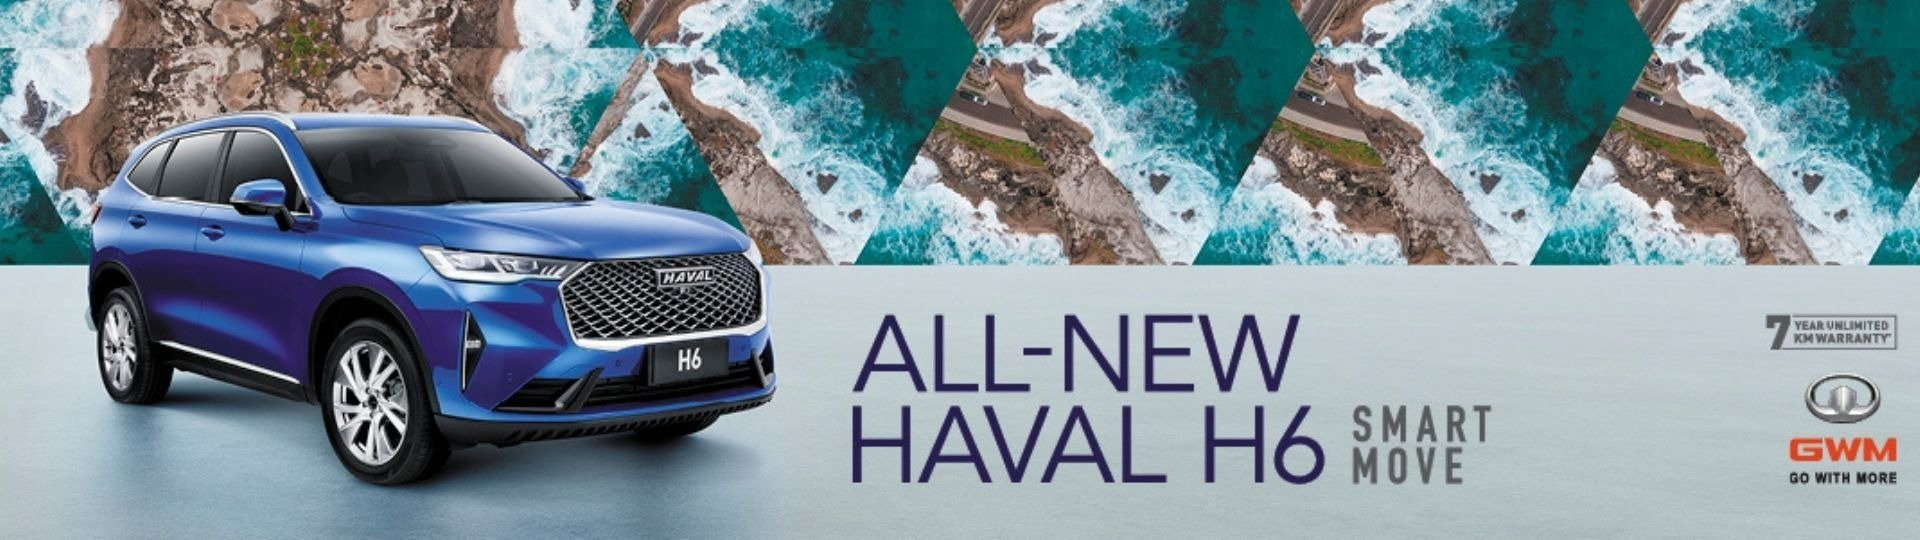 All-new H6